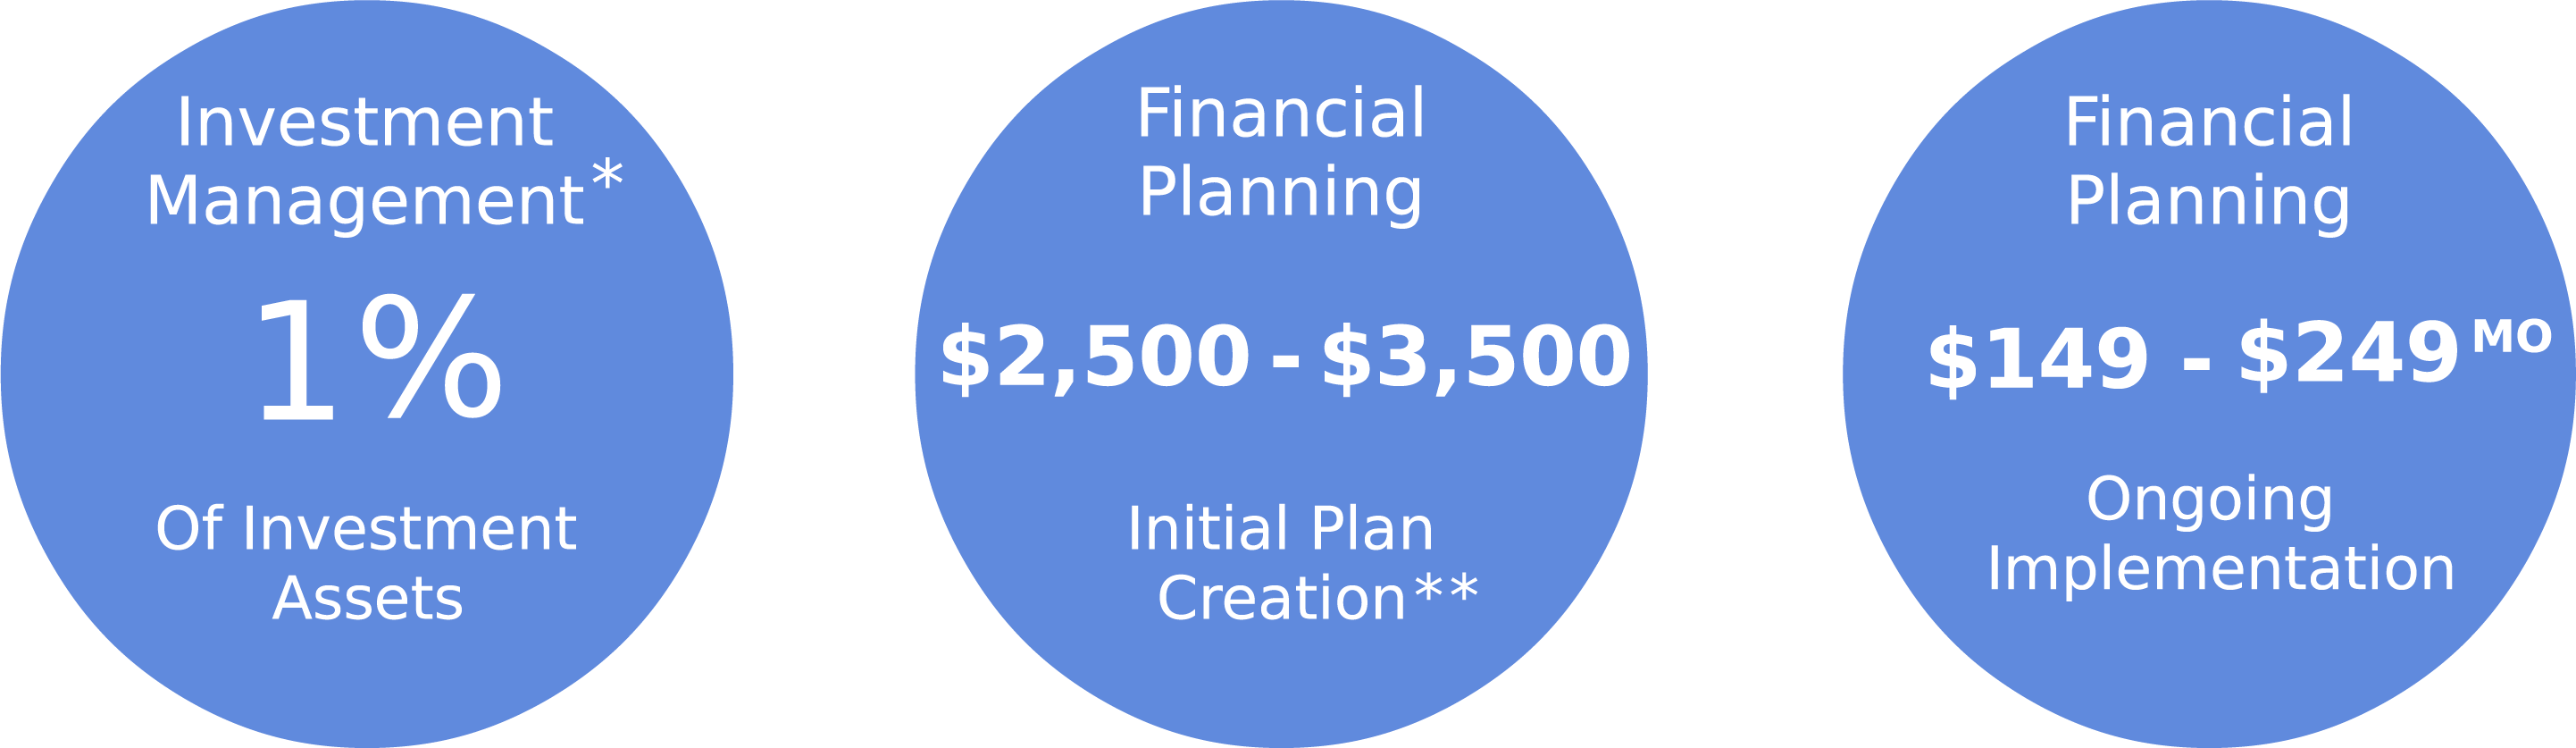 Pricing for investment management, initial plan creation, and ongoing financial planning